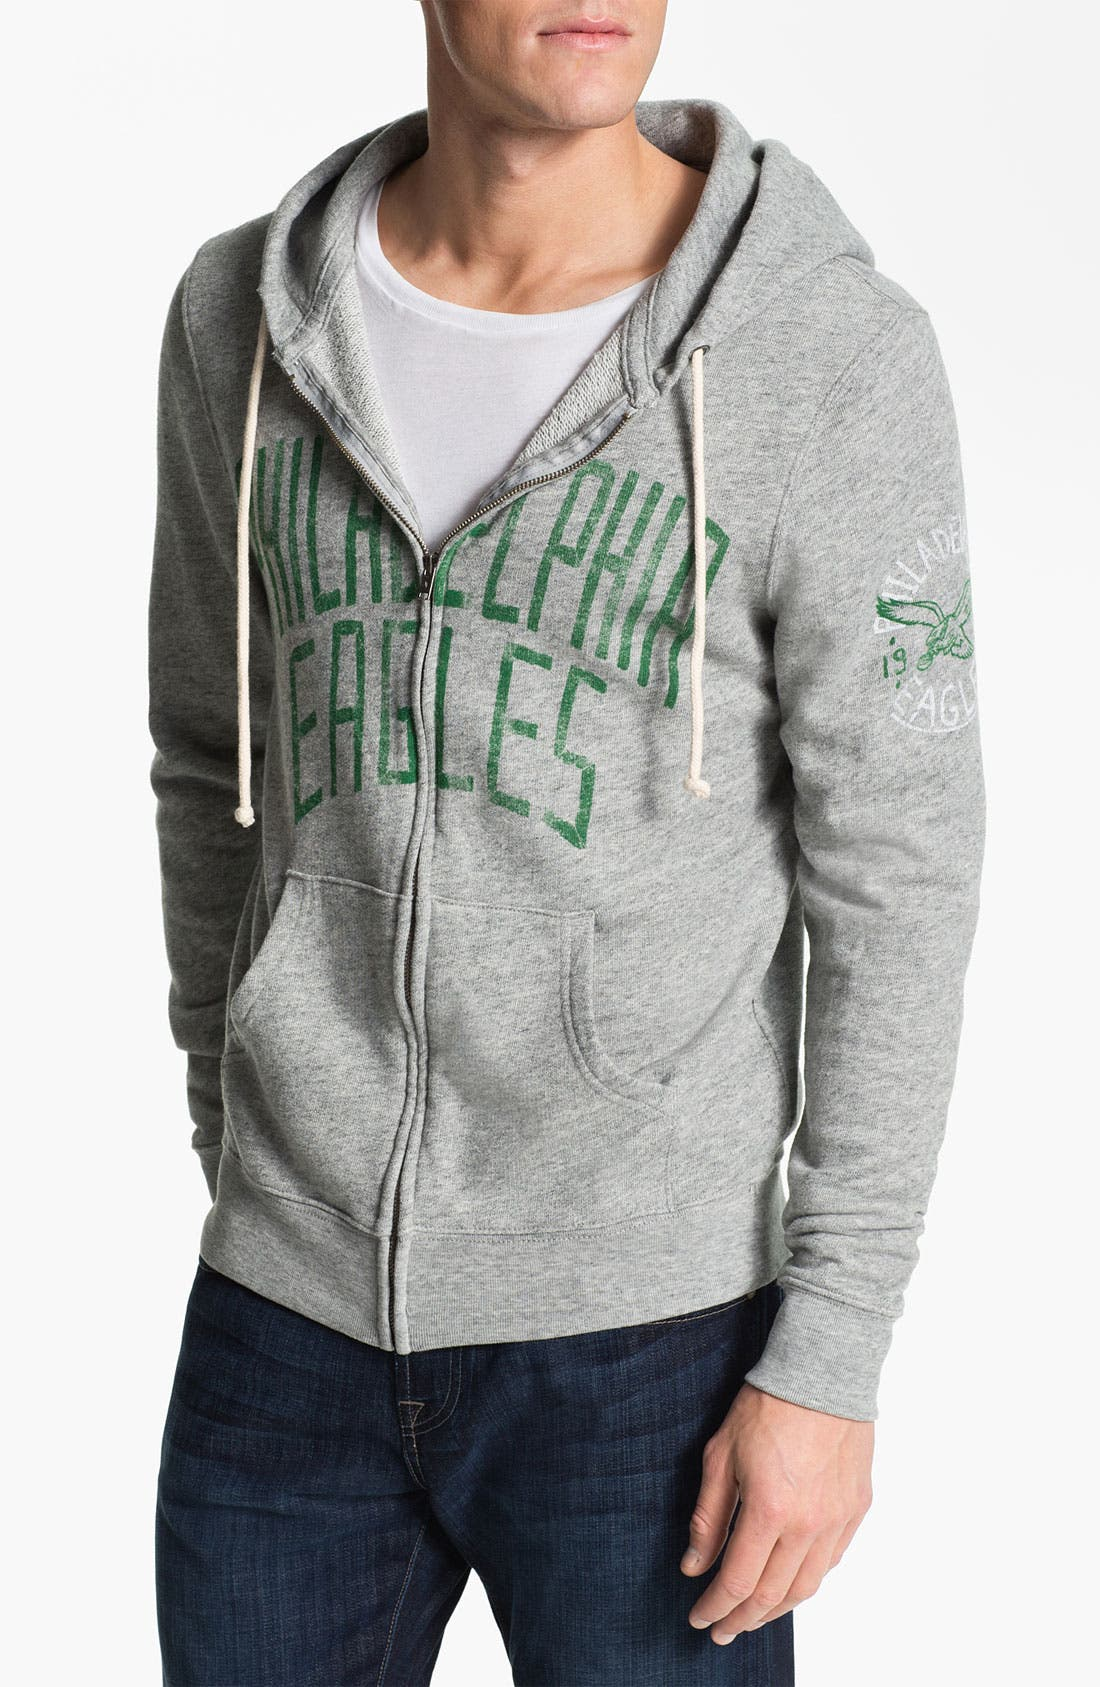 Main Image - Junk Food 'Philadelphia Eagles' Zip Hoodie